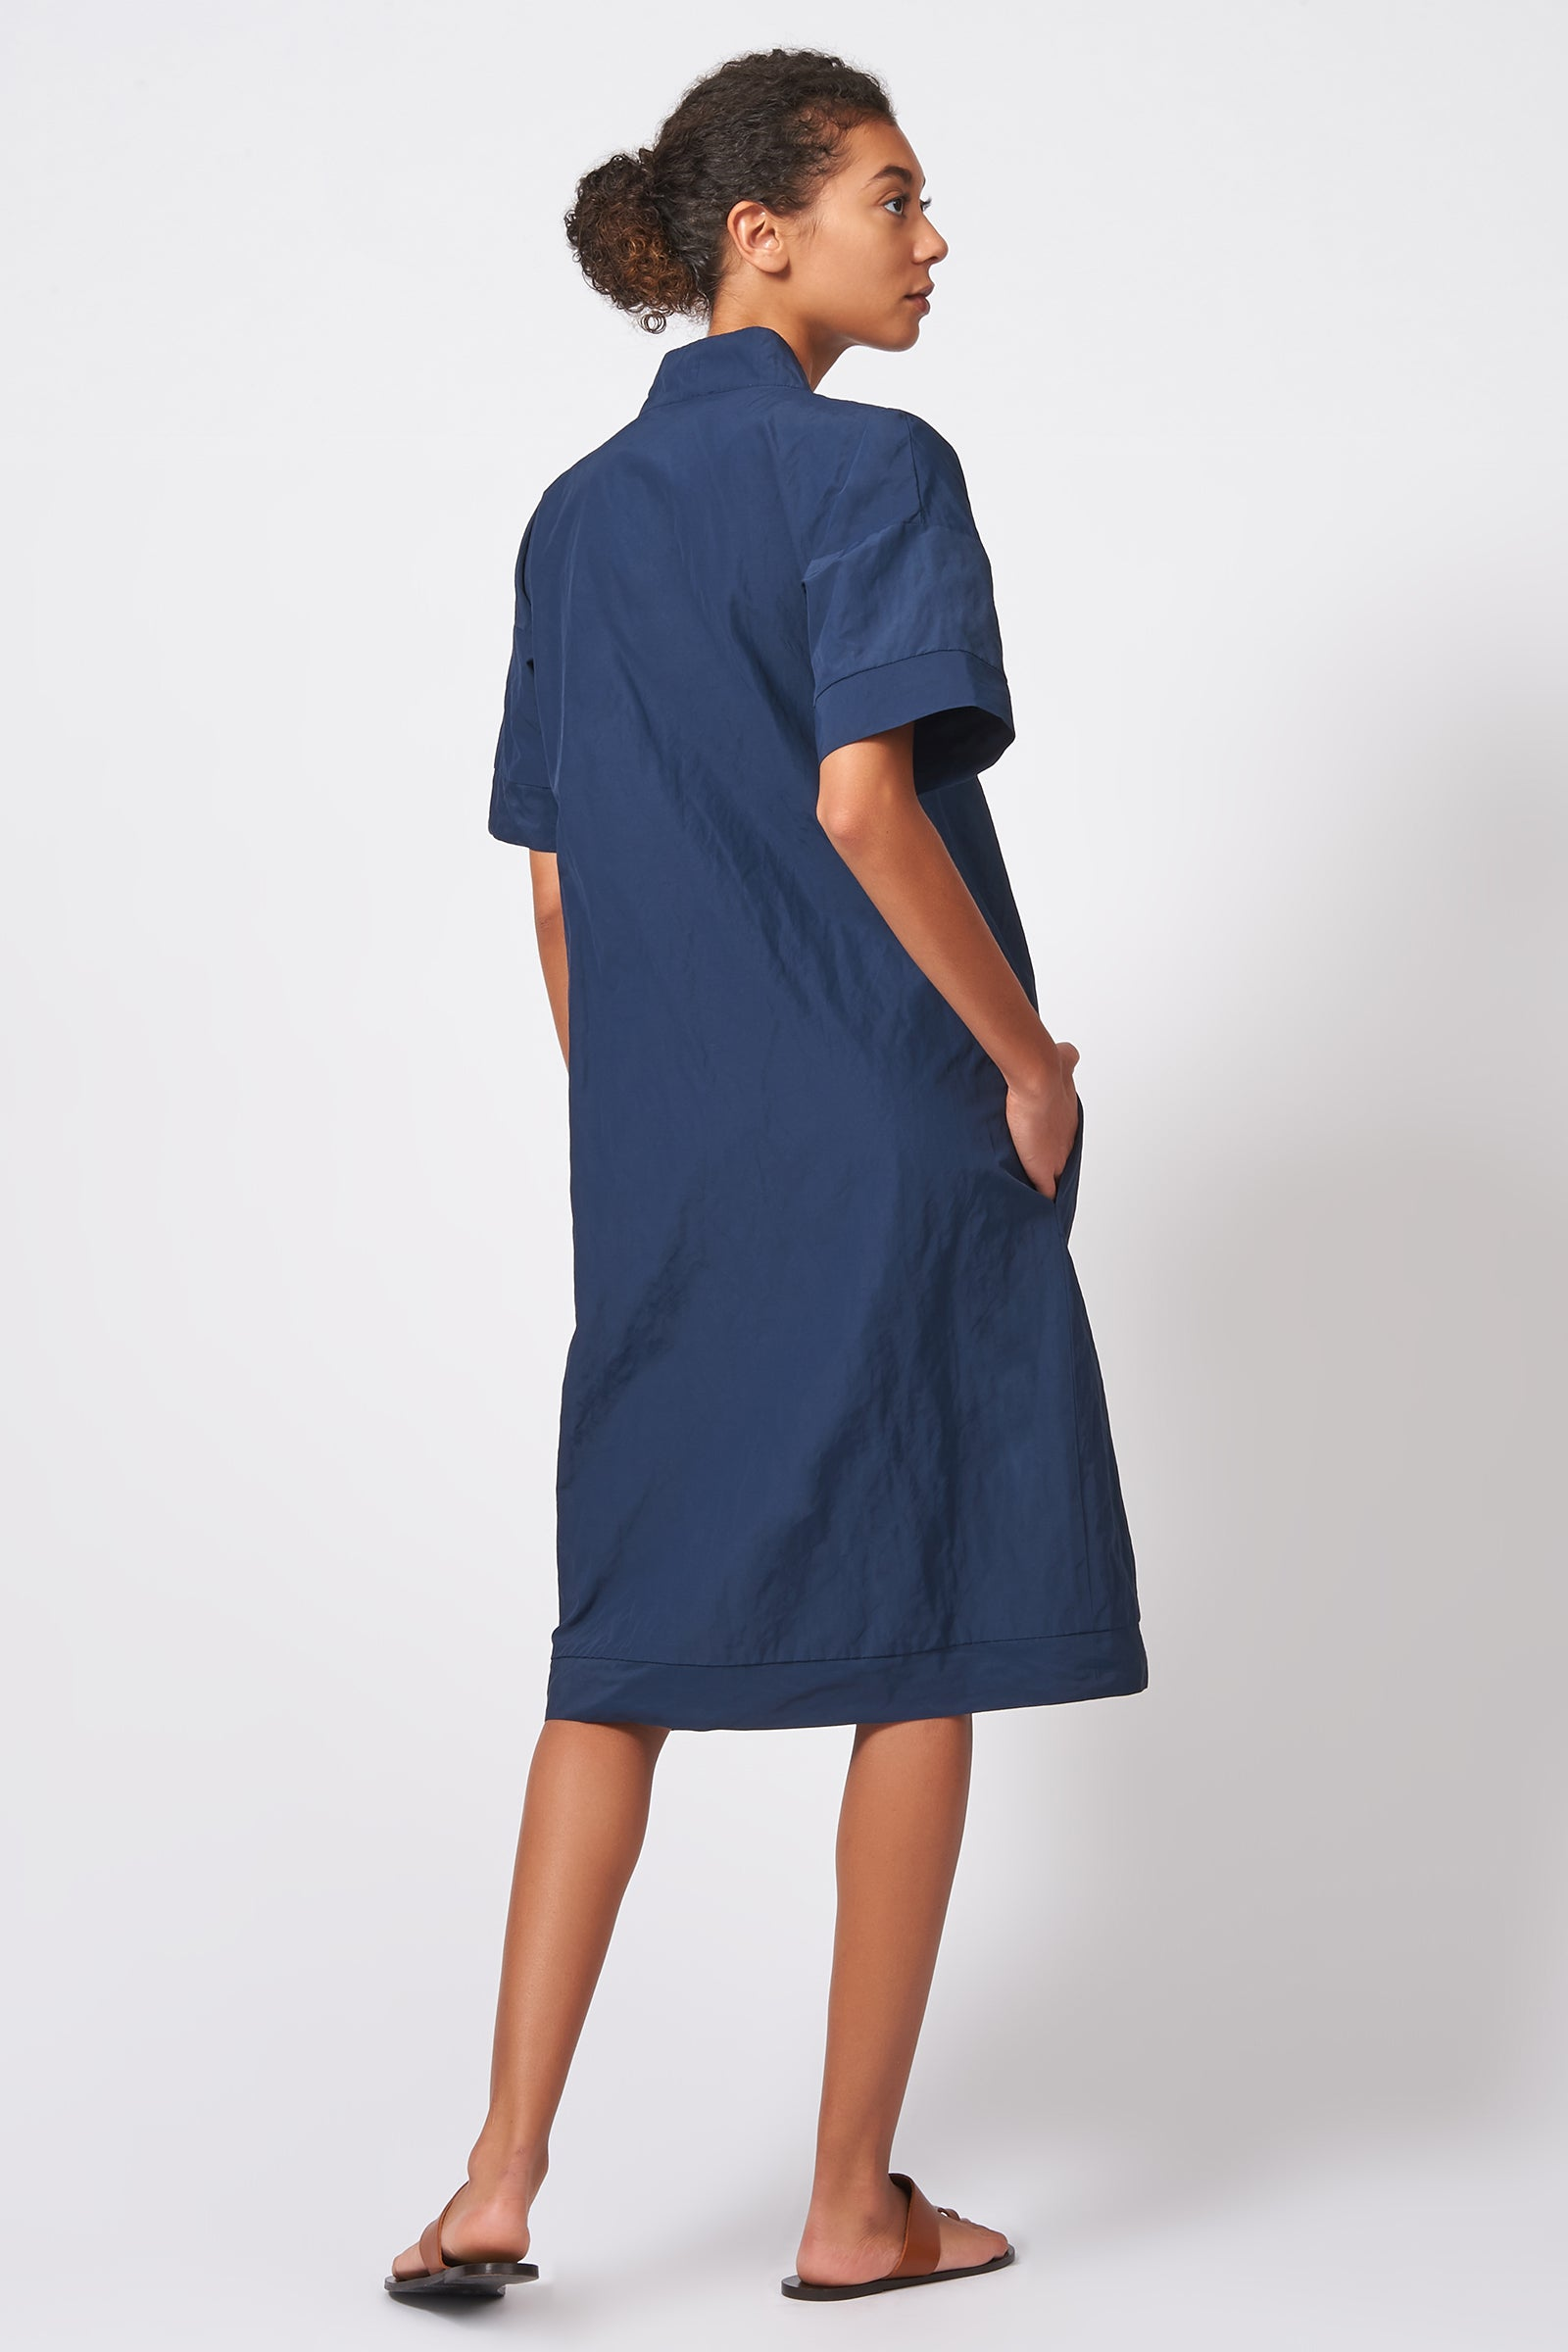 Kal Rieman Notch Placket Dress in Navy Cotton Nylon on Model Full Back View